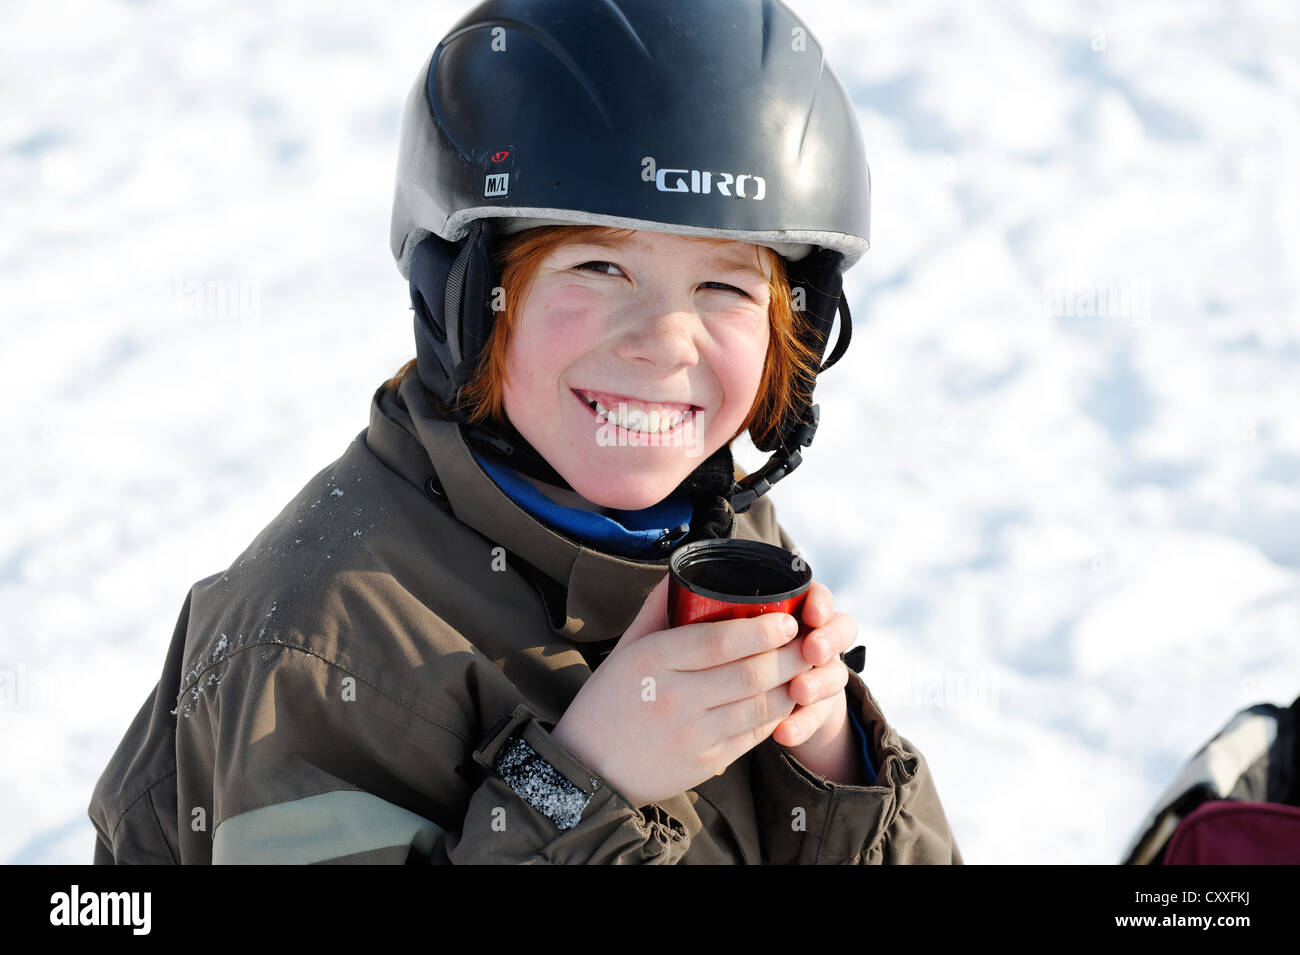 Boy drinking a cup of tea during wintersports in the snow - Stock Image